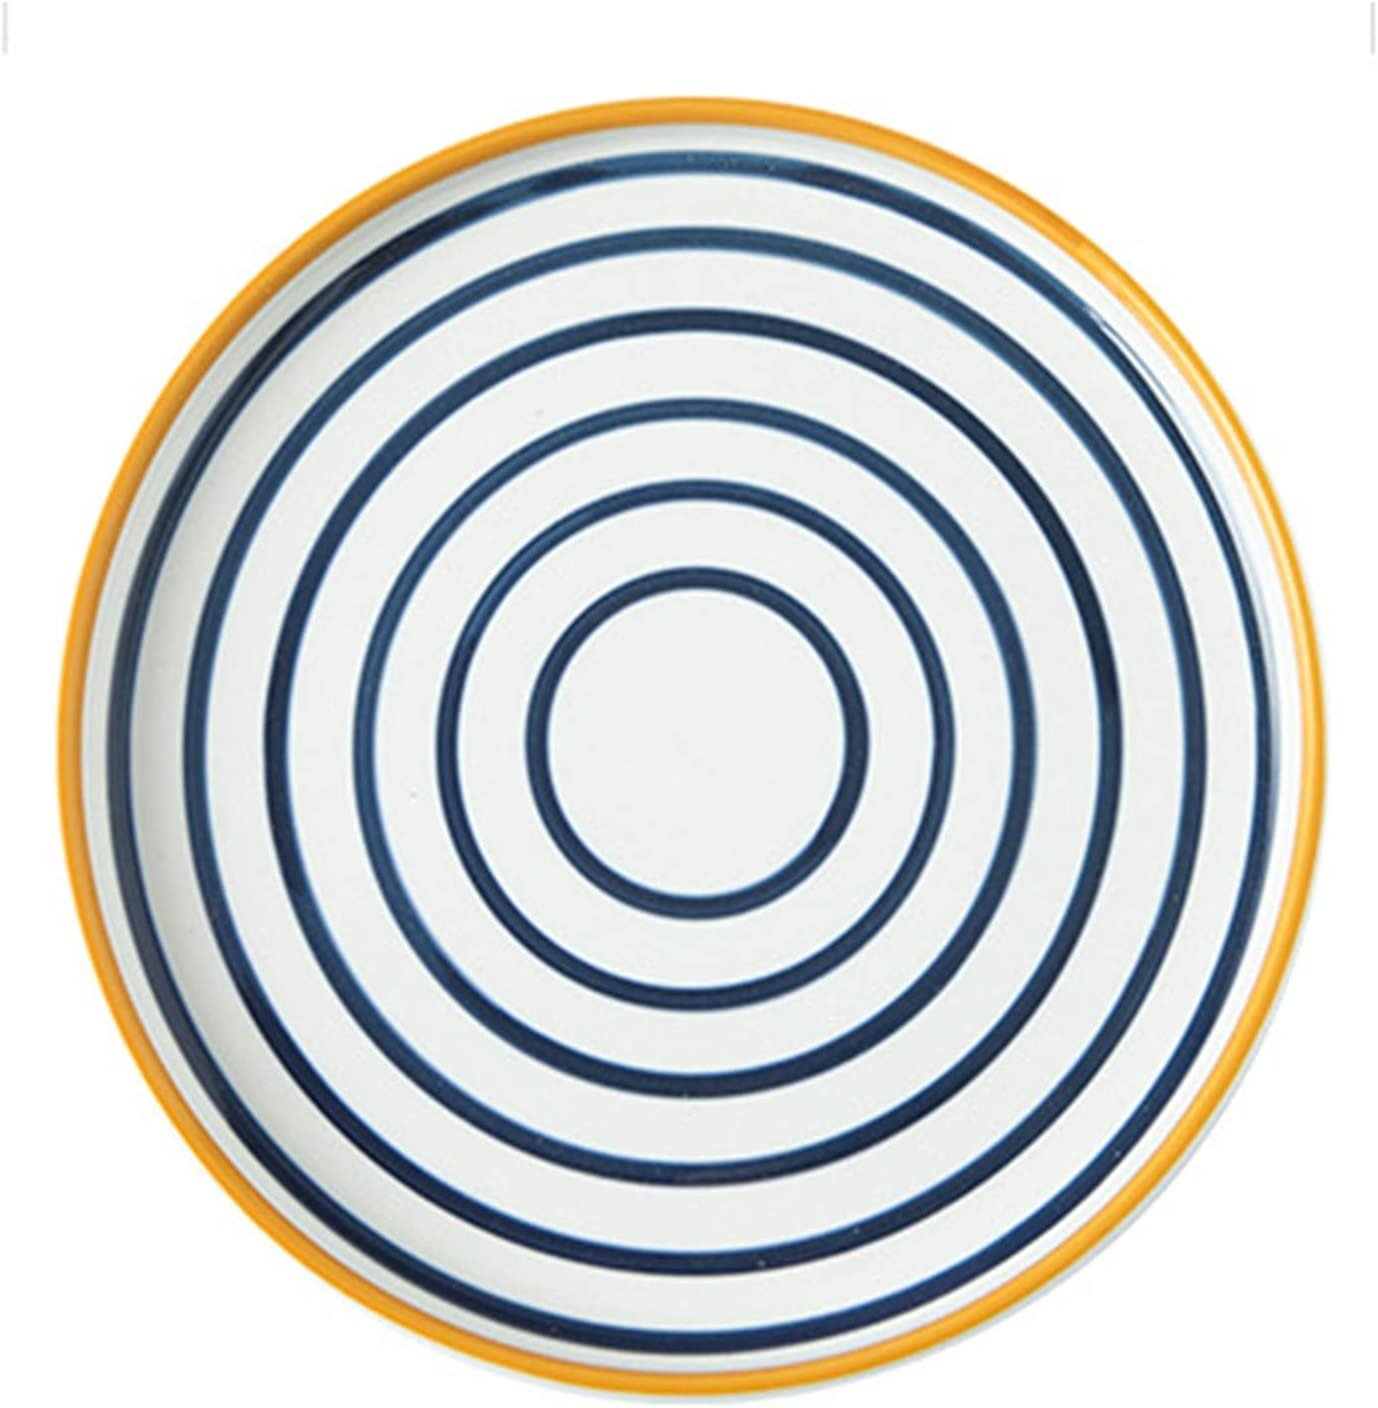 FANGMING Home Free shipping on posting Inventory cleanup selling sale reviews Dinner Ceramic Dish Plates